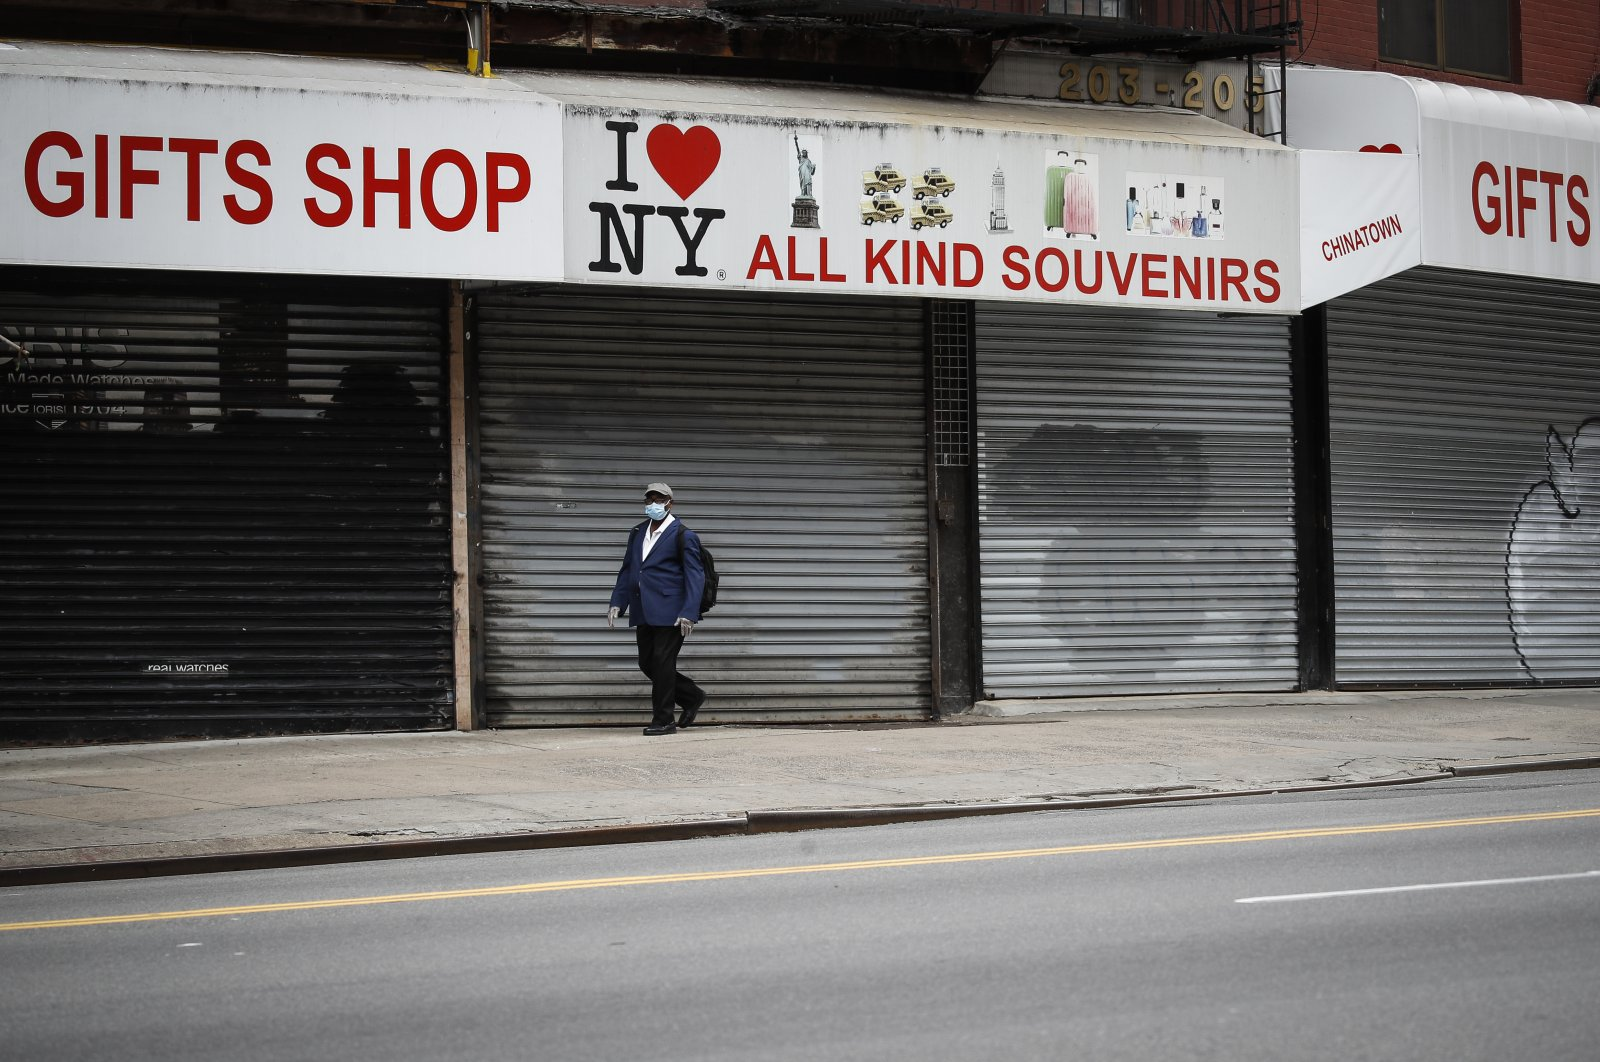 A pedestrian wearing a protective mask walks along shuttered storefronts on Canal Street during the coronavirus outbreak, New York, April 27, 2020. (AP Photo)